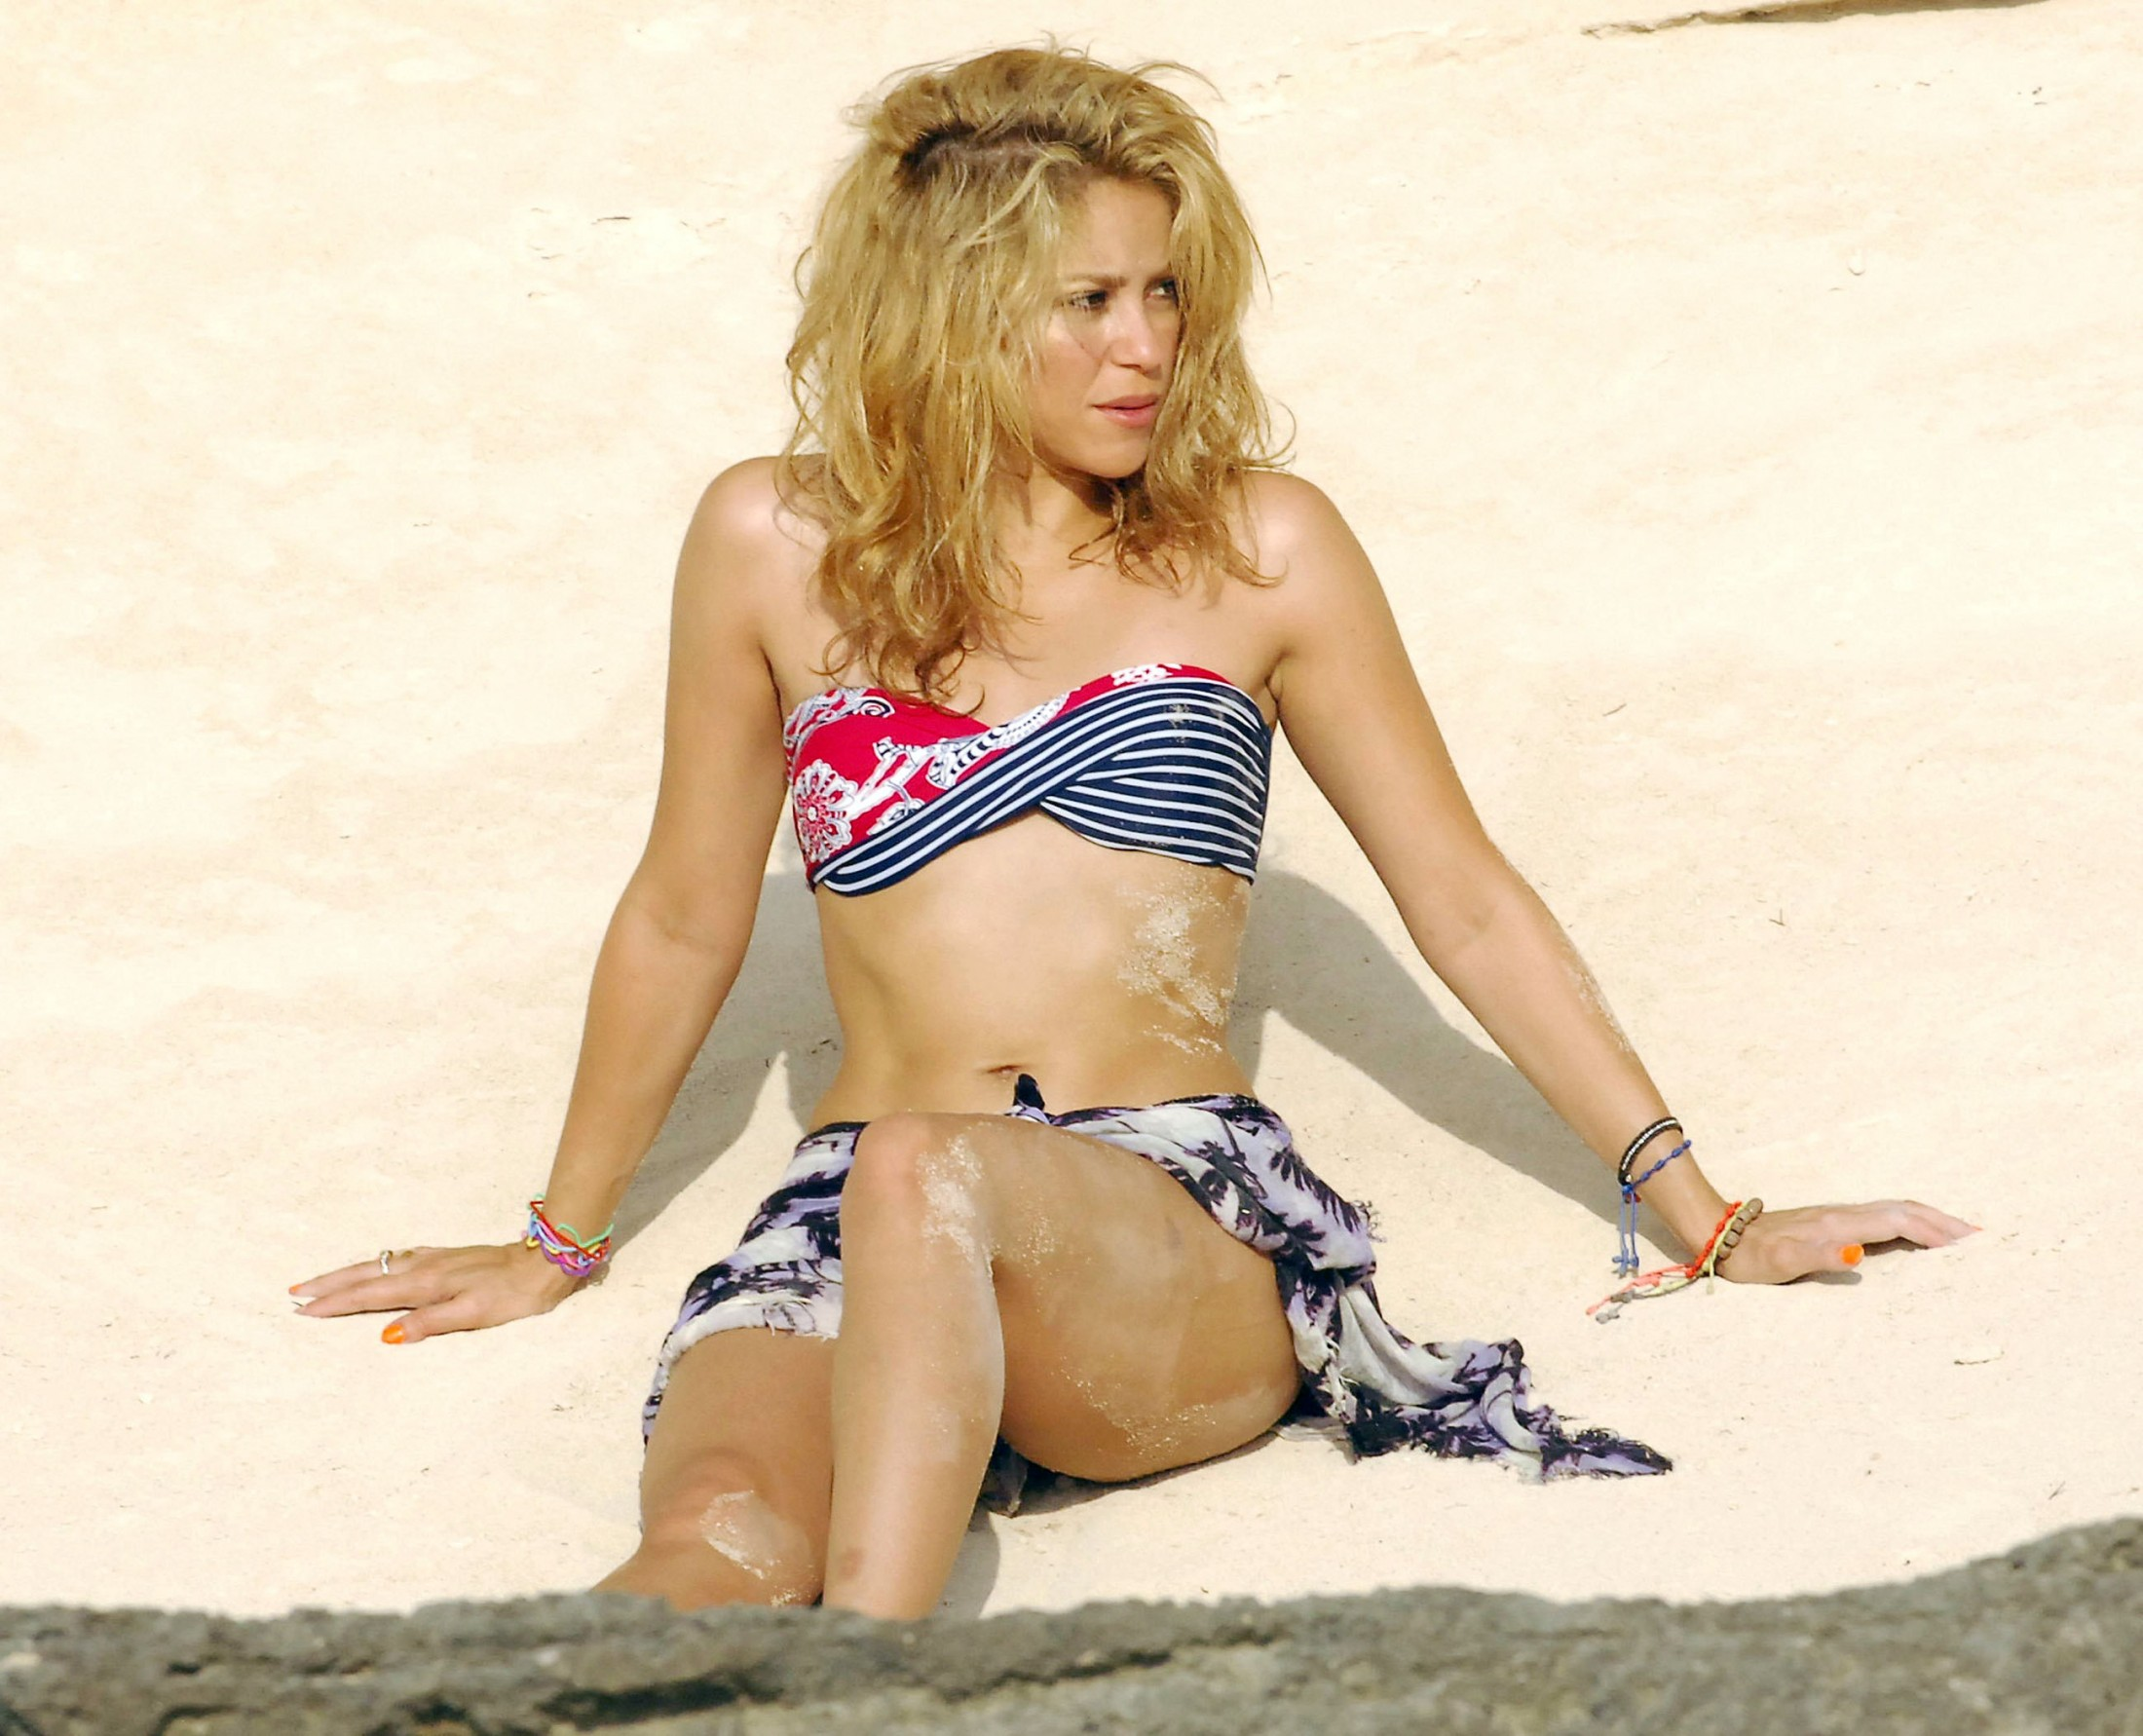 http://www.gotceleb.com/wp-content/uploads/celebrities/shakira-bikini/candids-on-yacht-in-spain/shakira-bikini-candids-on-yacht-in-spain-01-2200x1782.jpg